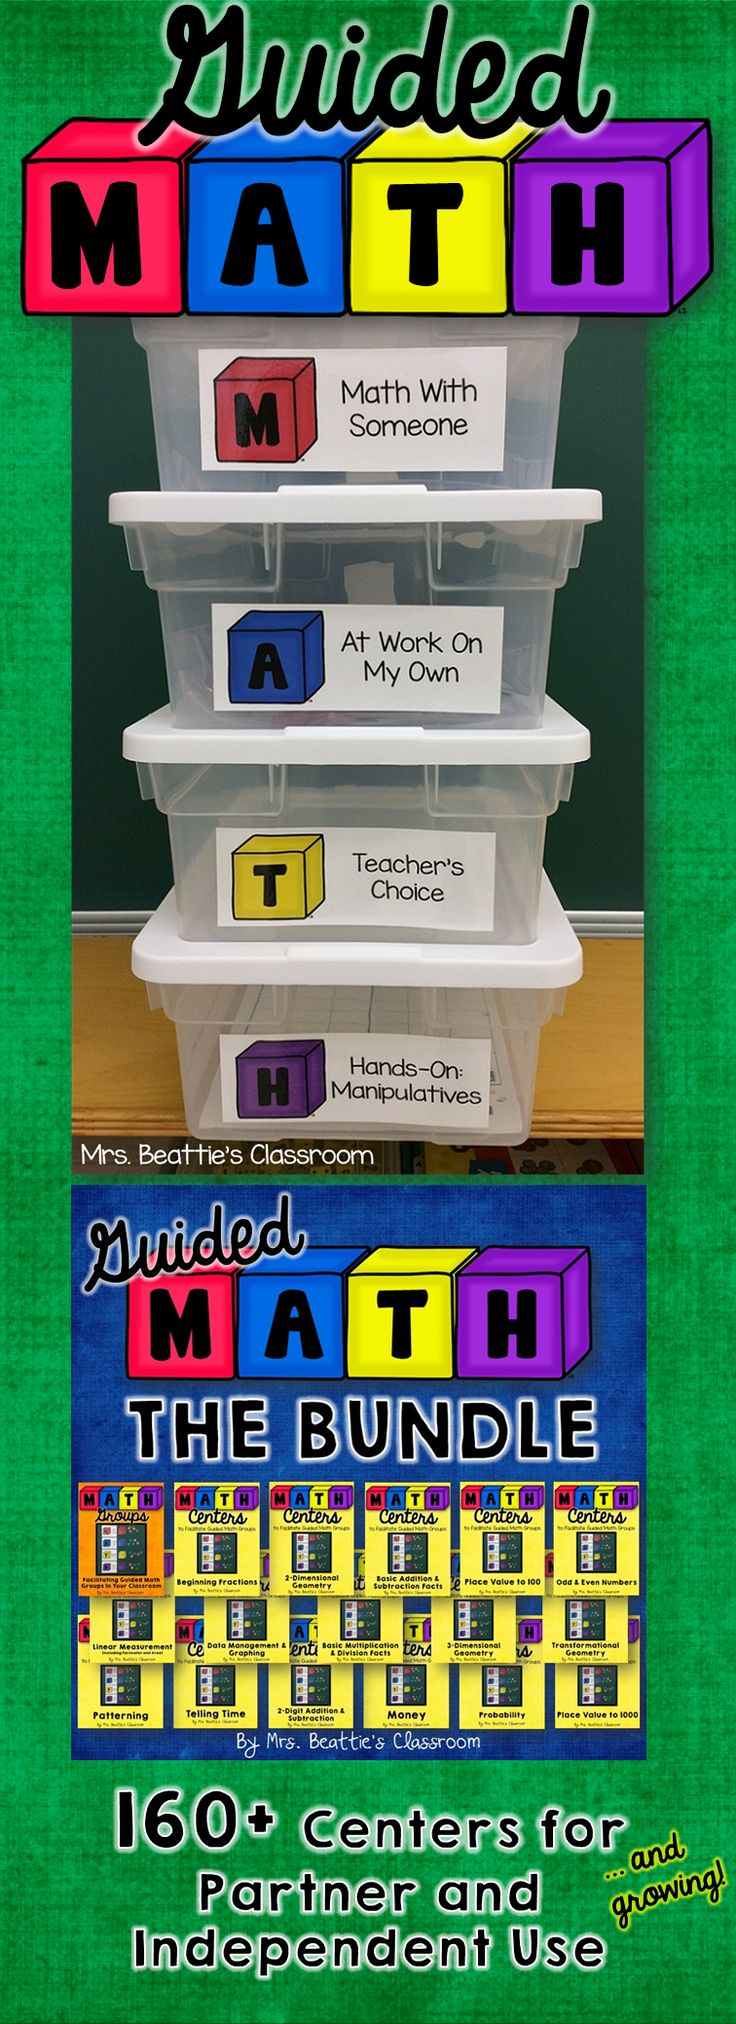 Using a Guided Math or Daily 5 Math approach in your classroom? Grab all current AND future Guided Math resources from Mrs. Beattie's Classroom in one money-saving bundle!! Click to check out the great reviews!